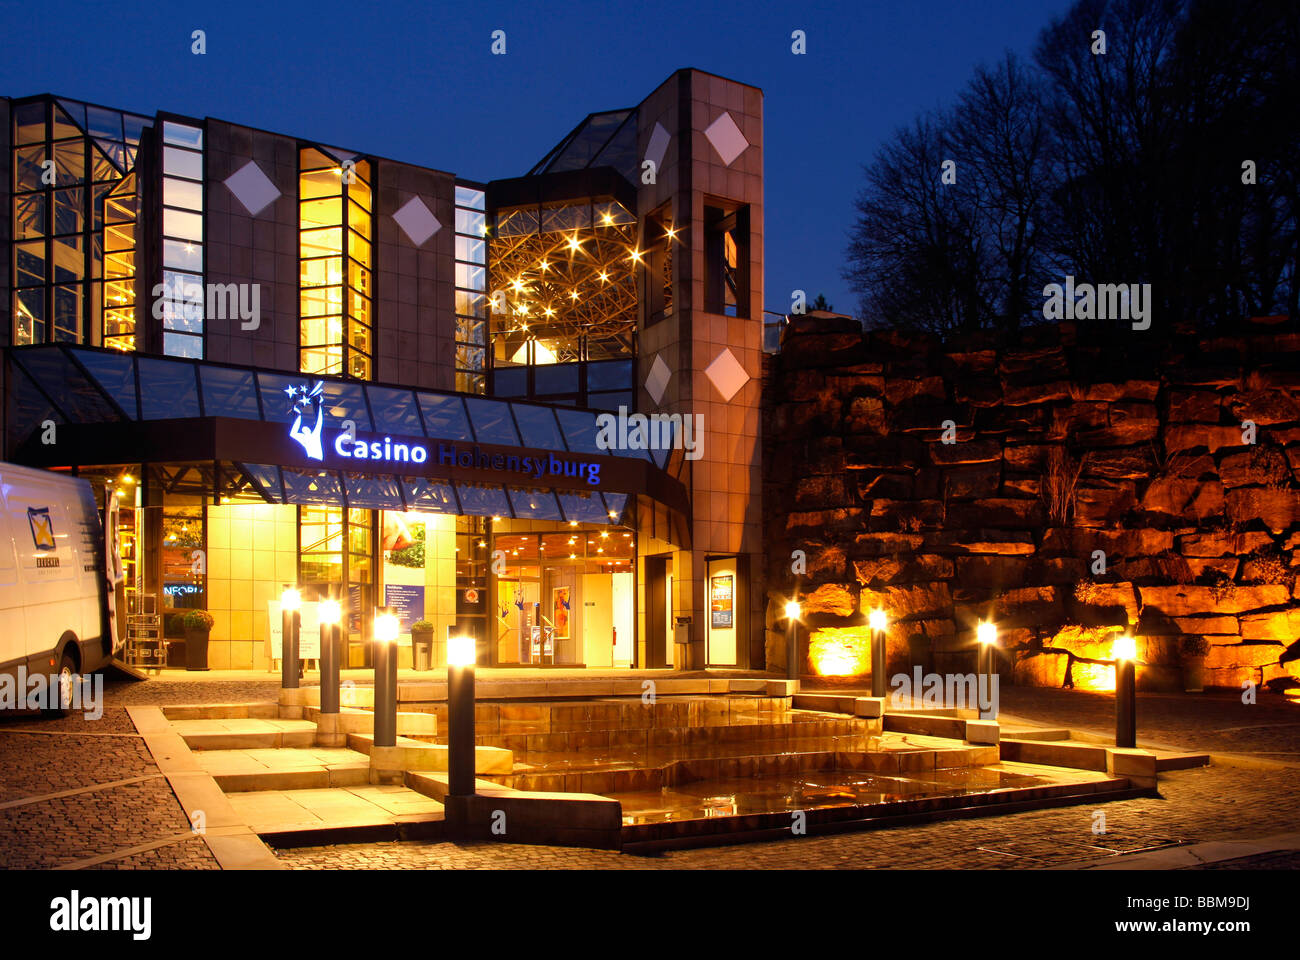 casino in dortmund